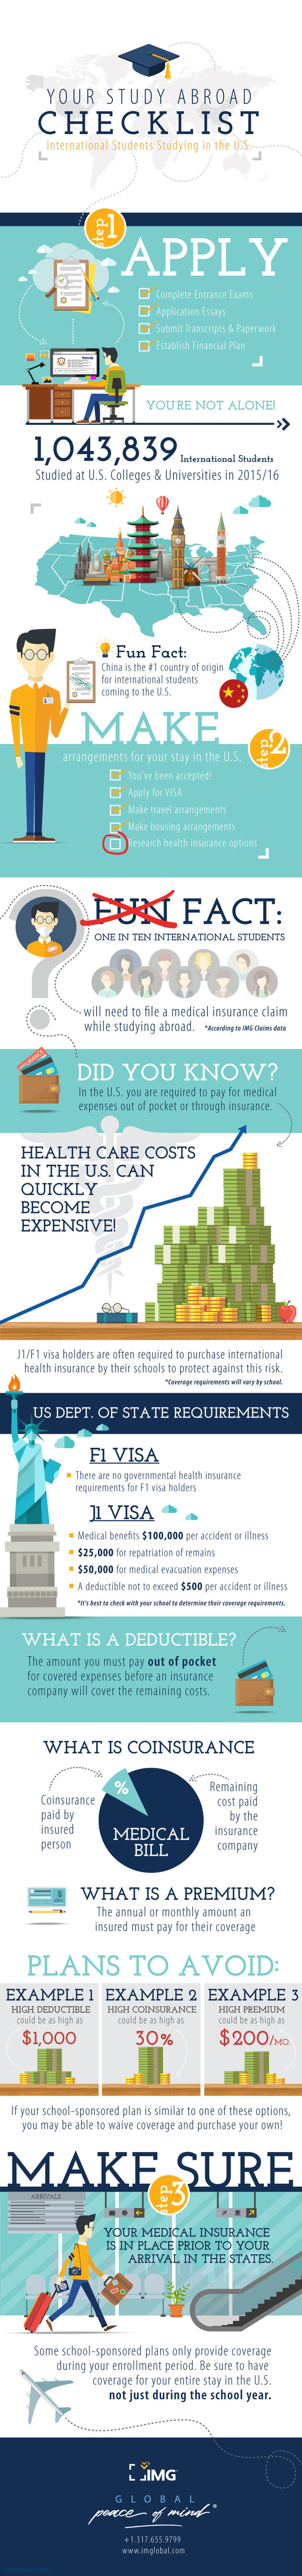 International Student Health Insurance Infographic